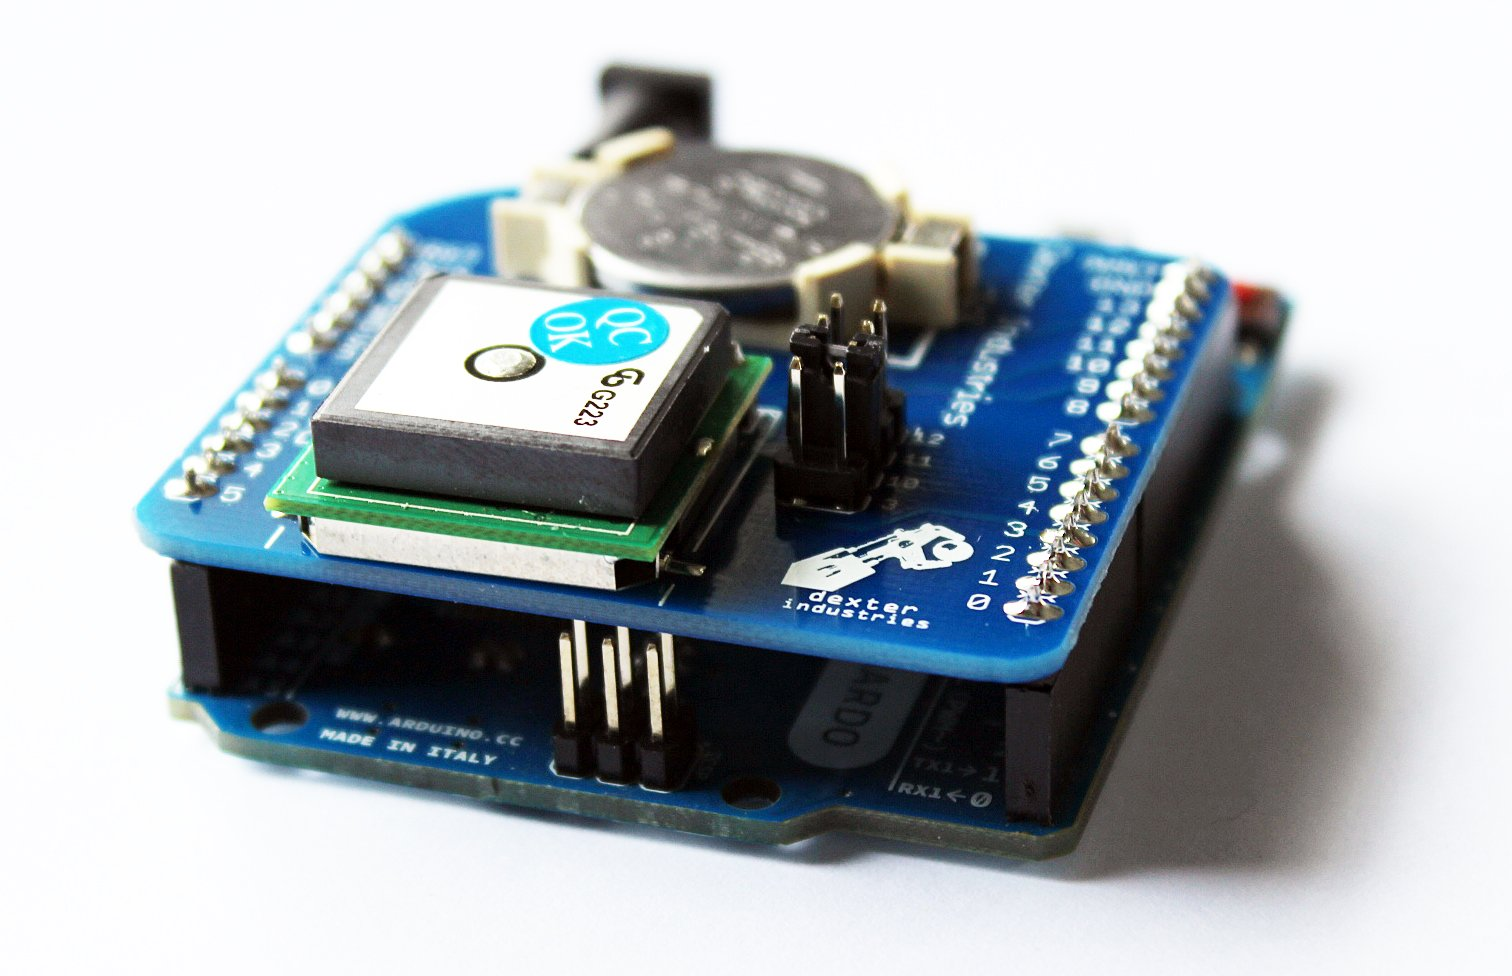 Arduino gps shield from dexterindustries on tindie